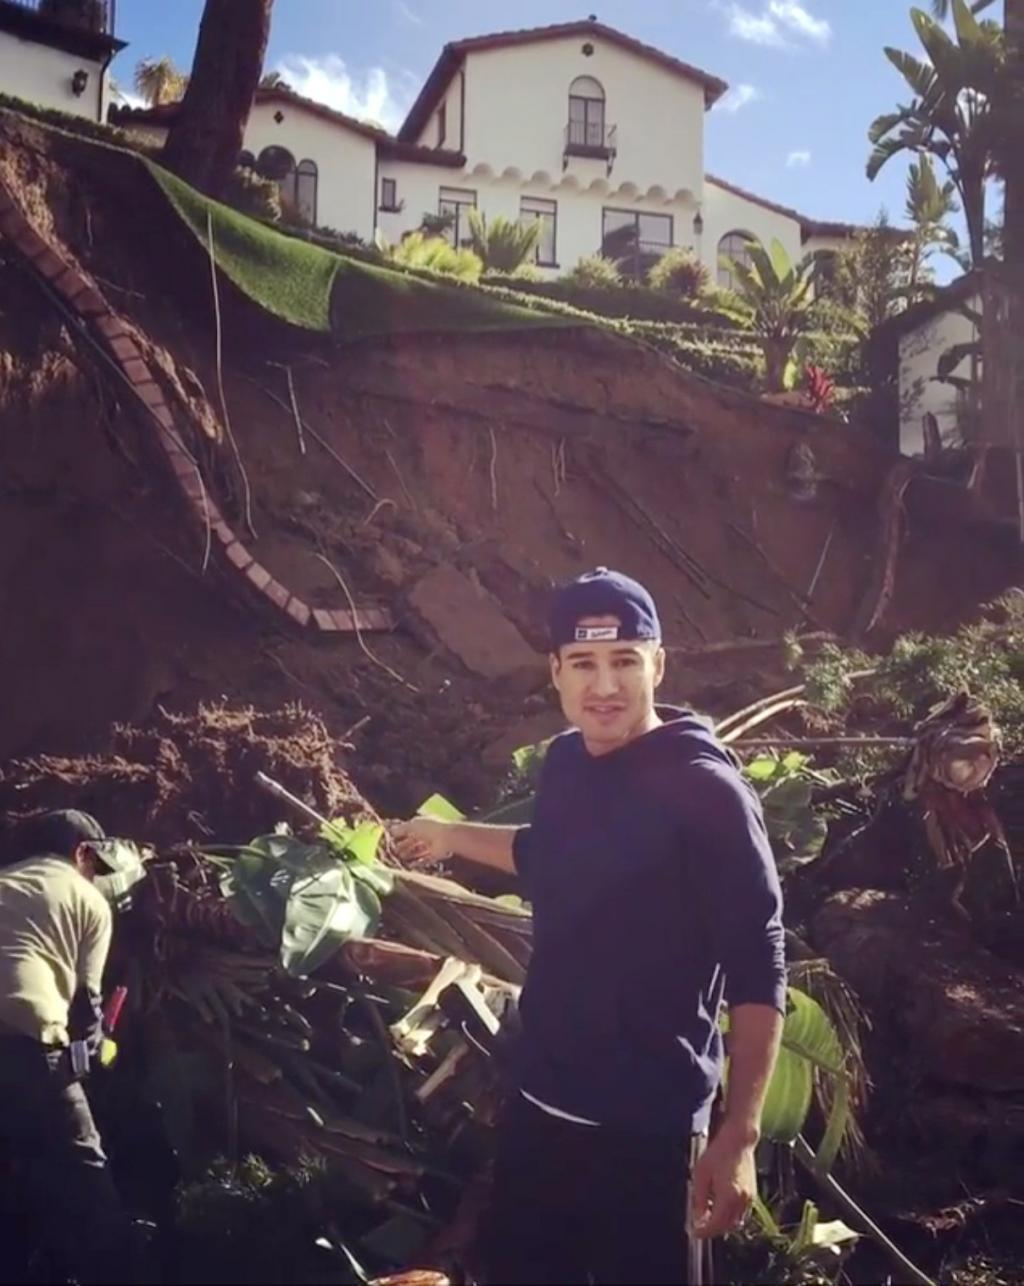 Thank God My Kids Weren       't Playing in the Yard       ': Mario Lopez       's Backyard Destroyed After Rainstorm